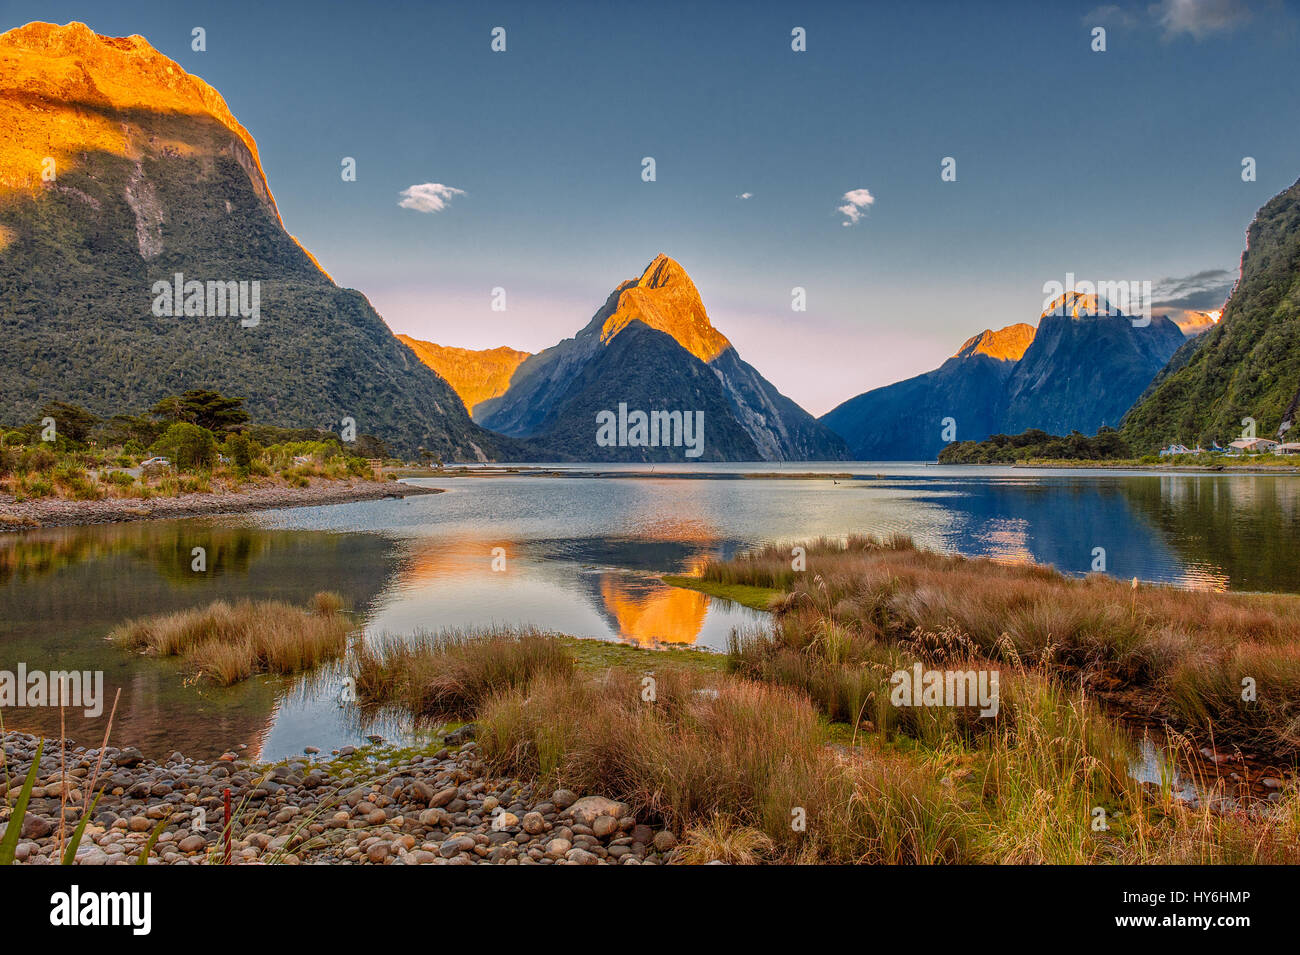 Dawn at Milford sound, Fiordlands National Park, New Zealand - Stock Image